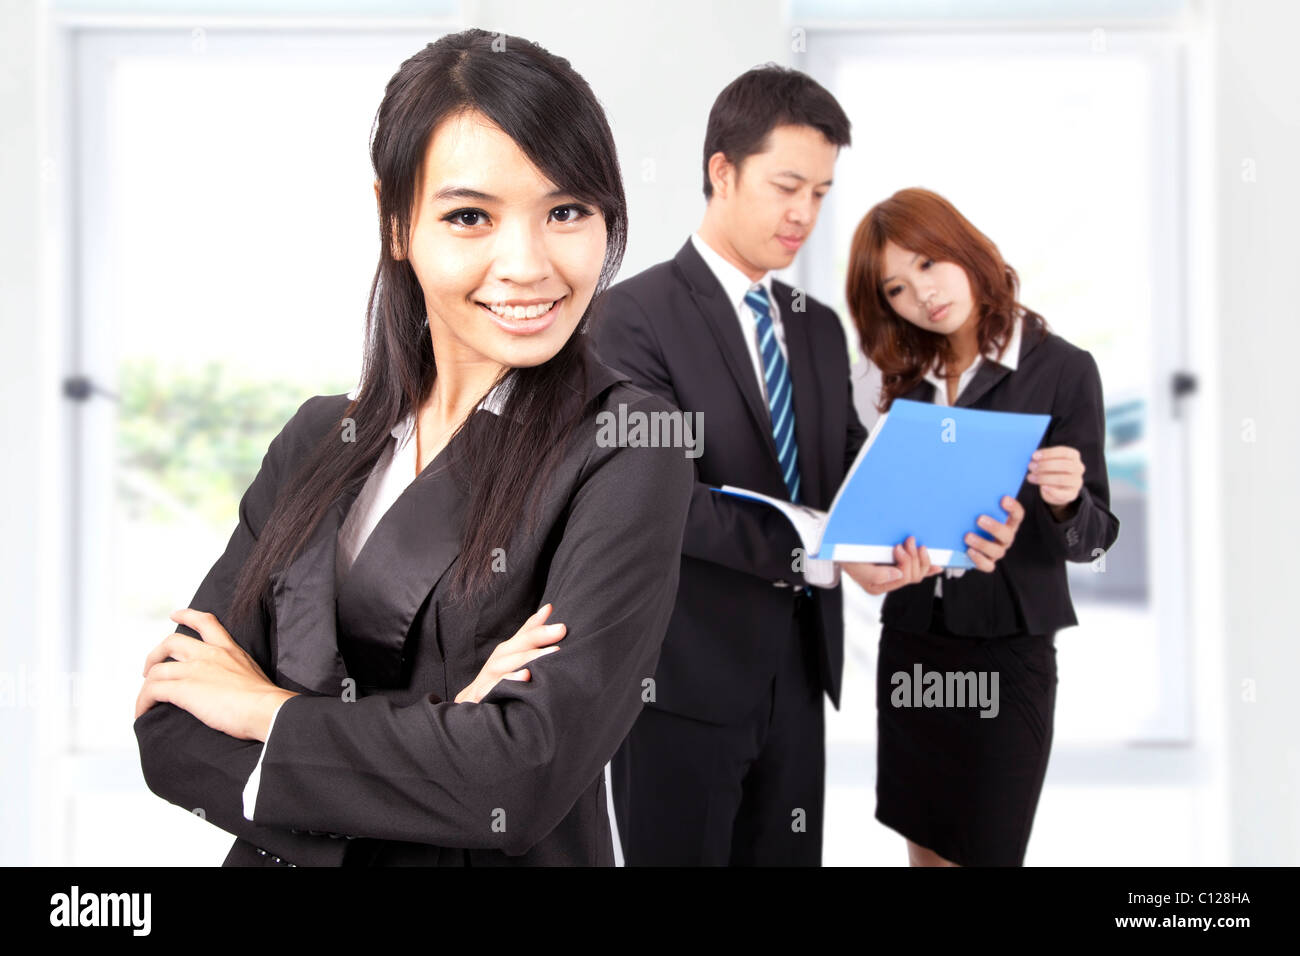 Young and smiling Business woman in an office - Stock Image